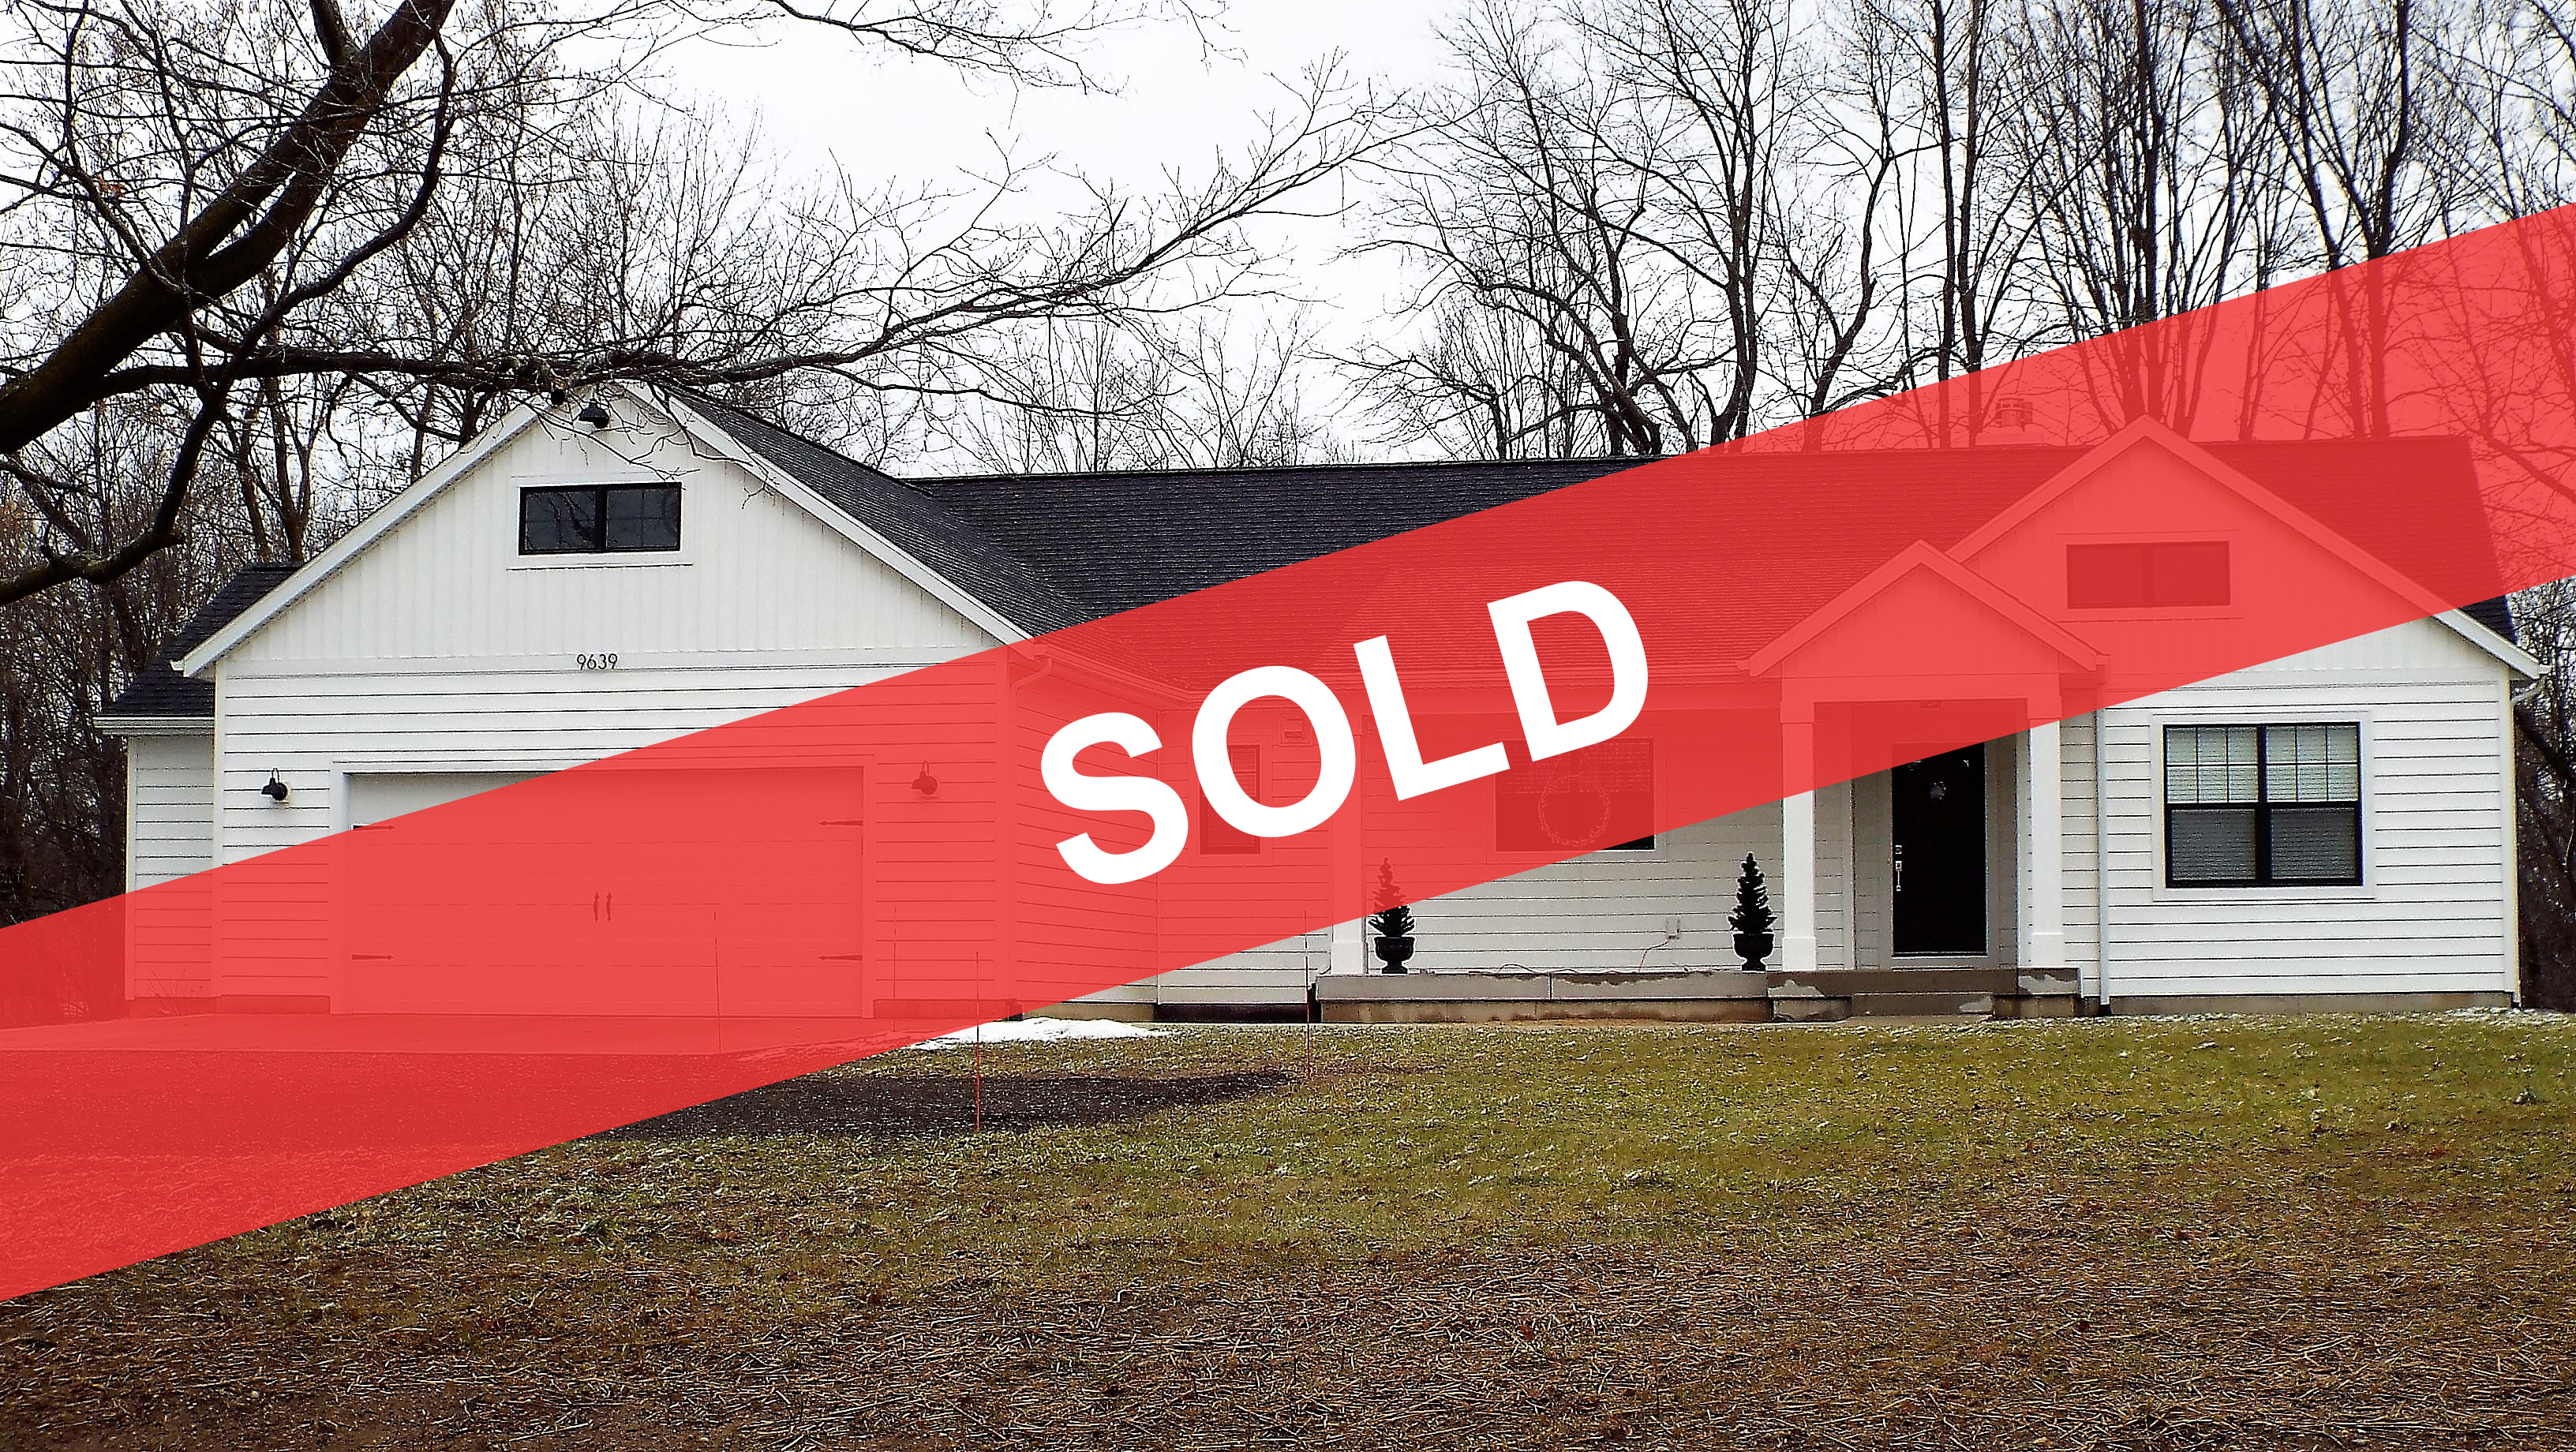 Lot-47-Sold